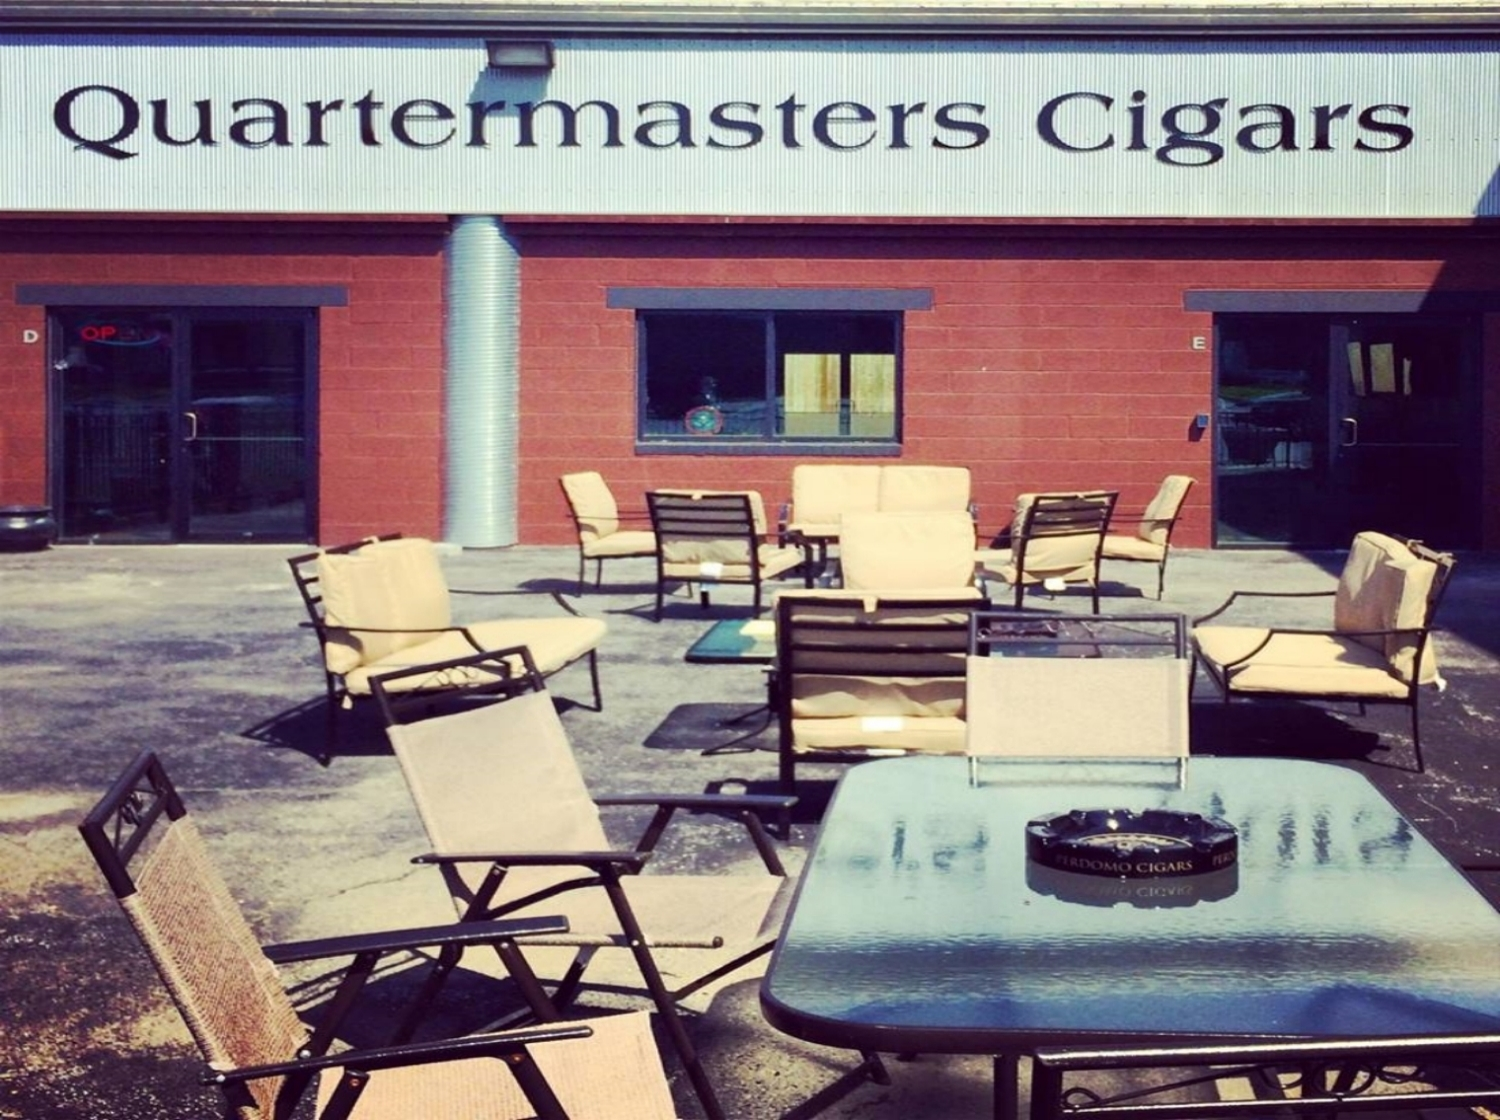 Quartermasters Cigars in Frederick, MD